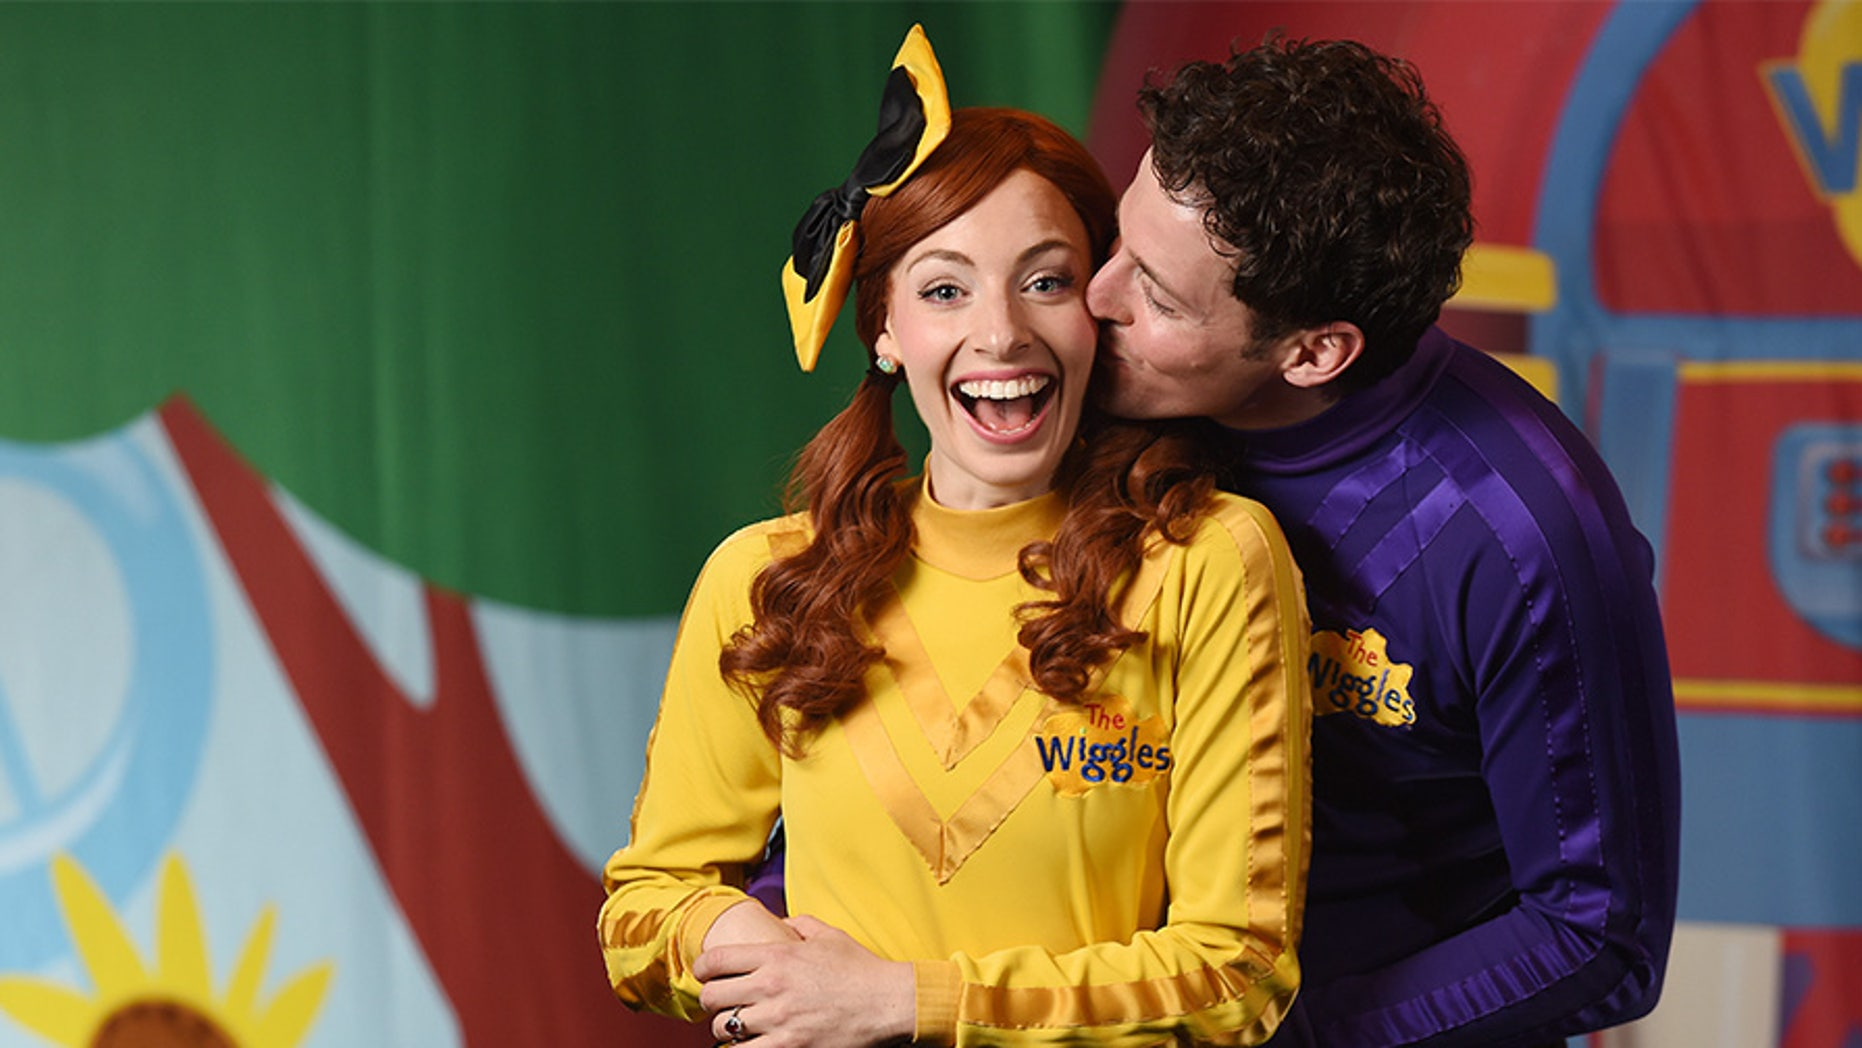 The Wiggles power couple Emma Watkins and Lachlan Gillespie have announced their separation.